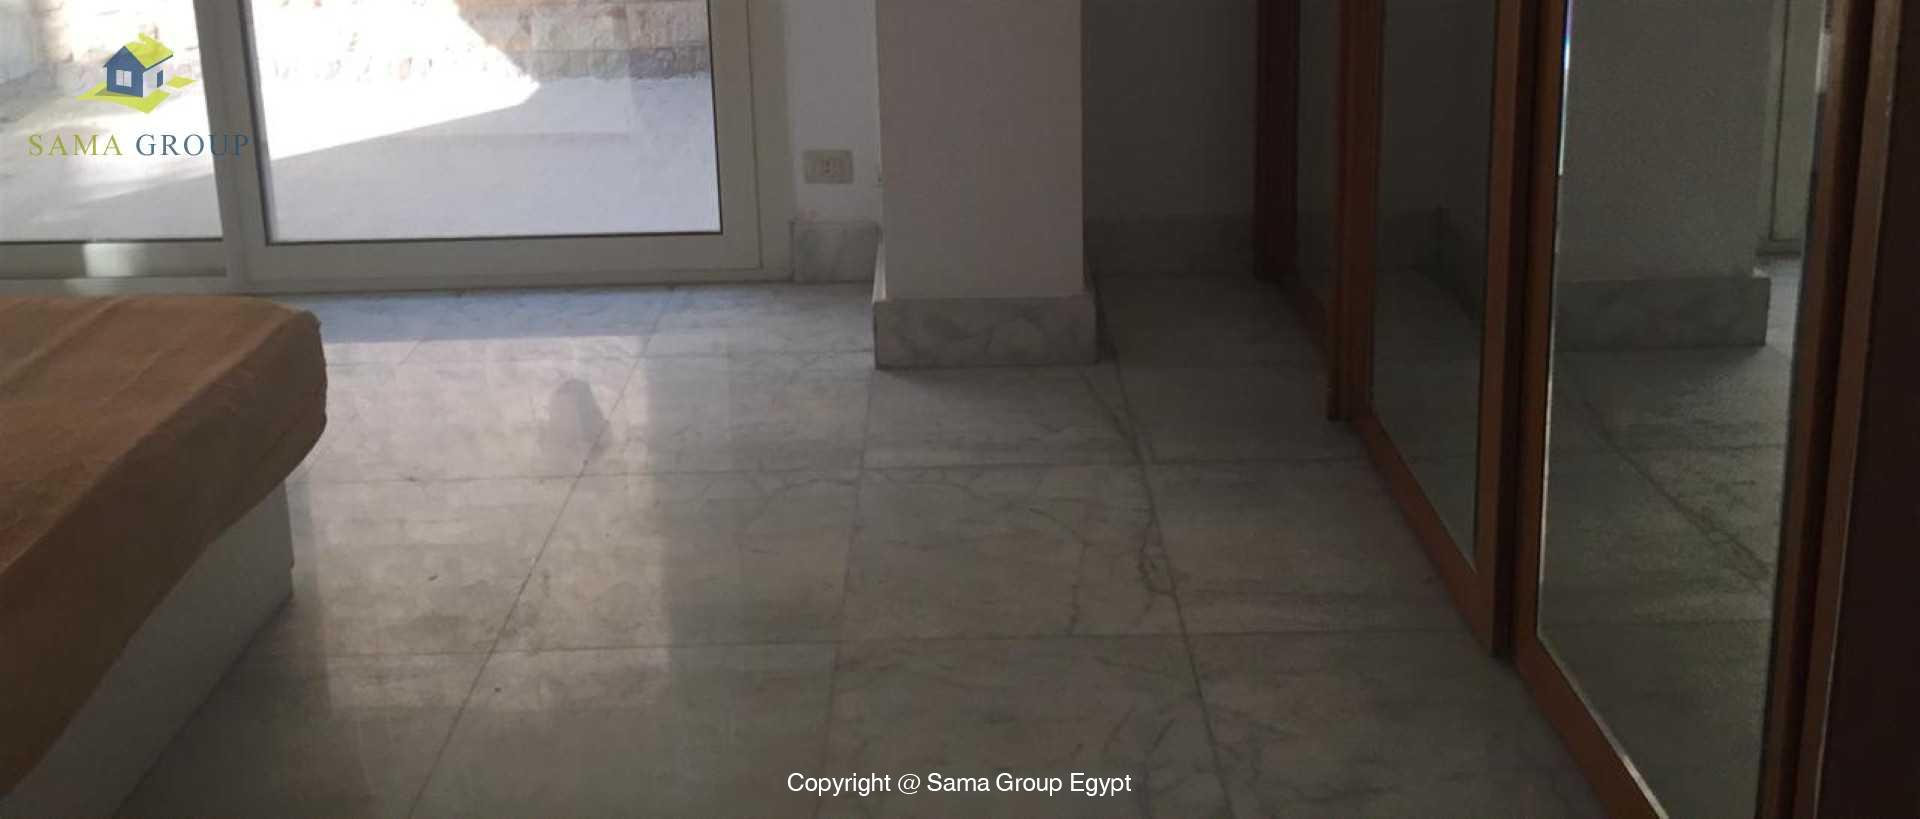 Furnished Ground Floor For Rent In Maadi Sarayat,Furnished,Ground Floor NO #14